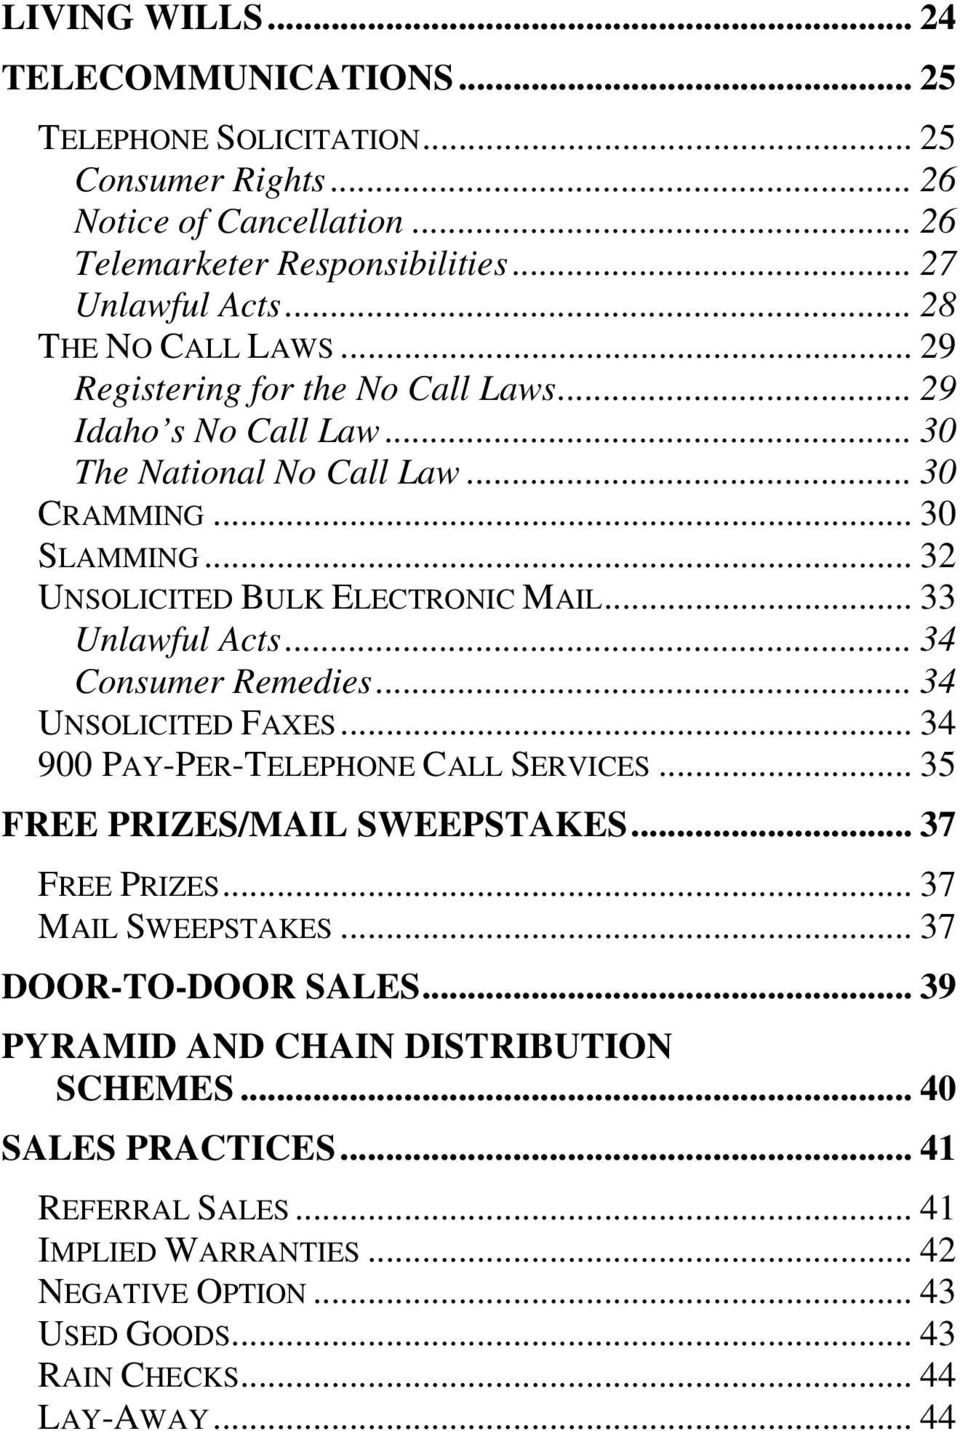 .. 33 Unlawful Acts... 34 Consumer Remedies... 34 UNSOLICITED FAXES... 34 900 PAY-PER-TELEPHONE CALL SERVICES... 35 FREE PRIZES/MAIL SWEEPSTAKES... 37 FREE PRIZES... 37 MAIL SWEEPSTAKES.